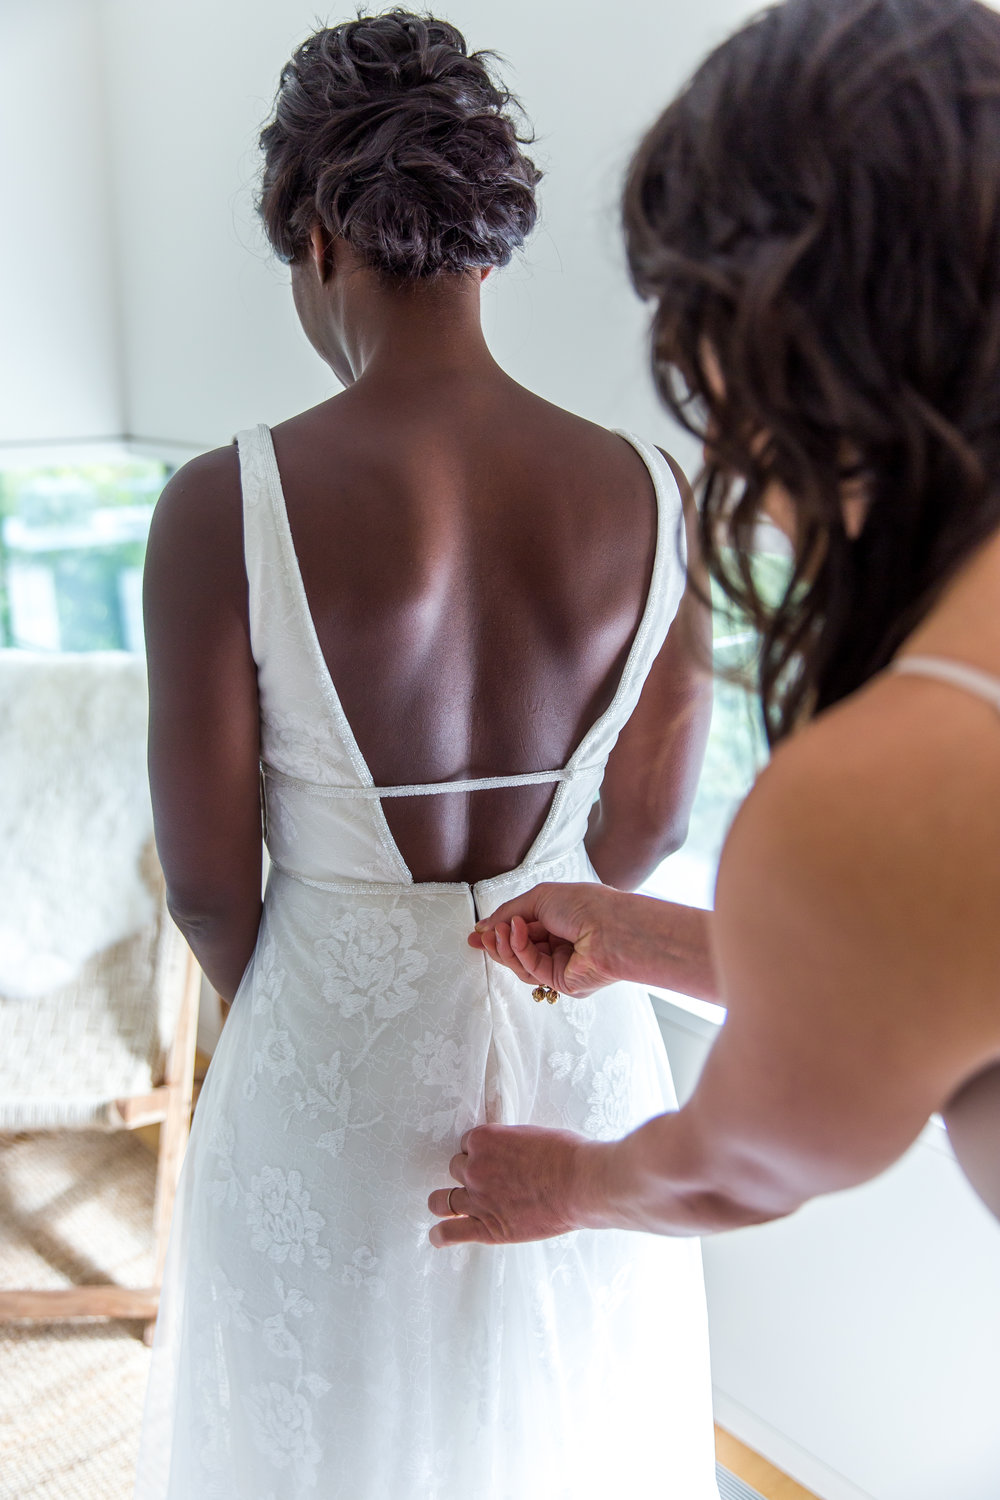 Tall & Small Events NYC, D+K, Modern, Intimate Bohemian Beach Ceremony and Same Sex Real Wedding at Private Residence, Montauk, New York City. Photo: Alexander Kusak